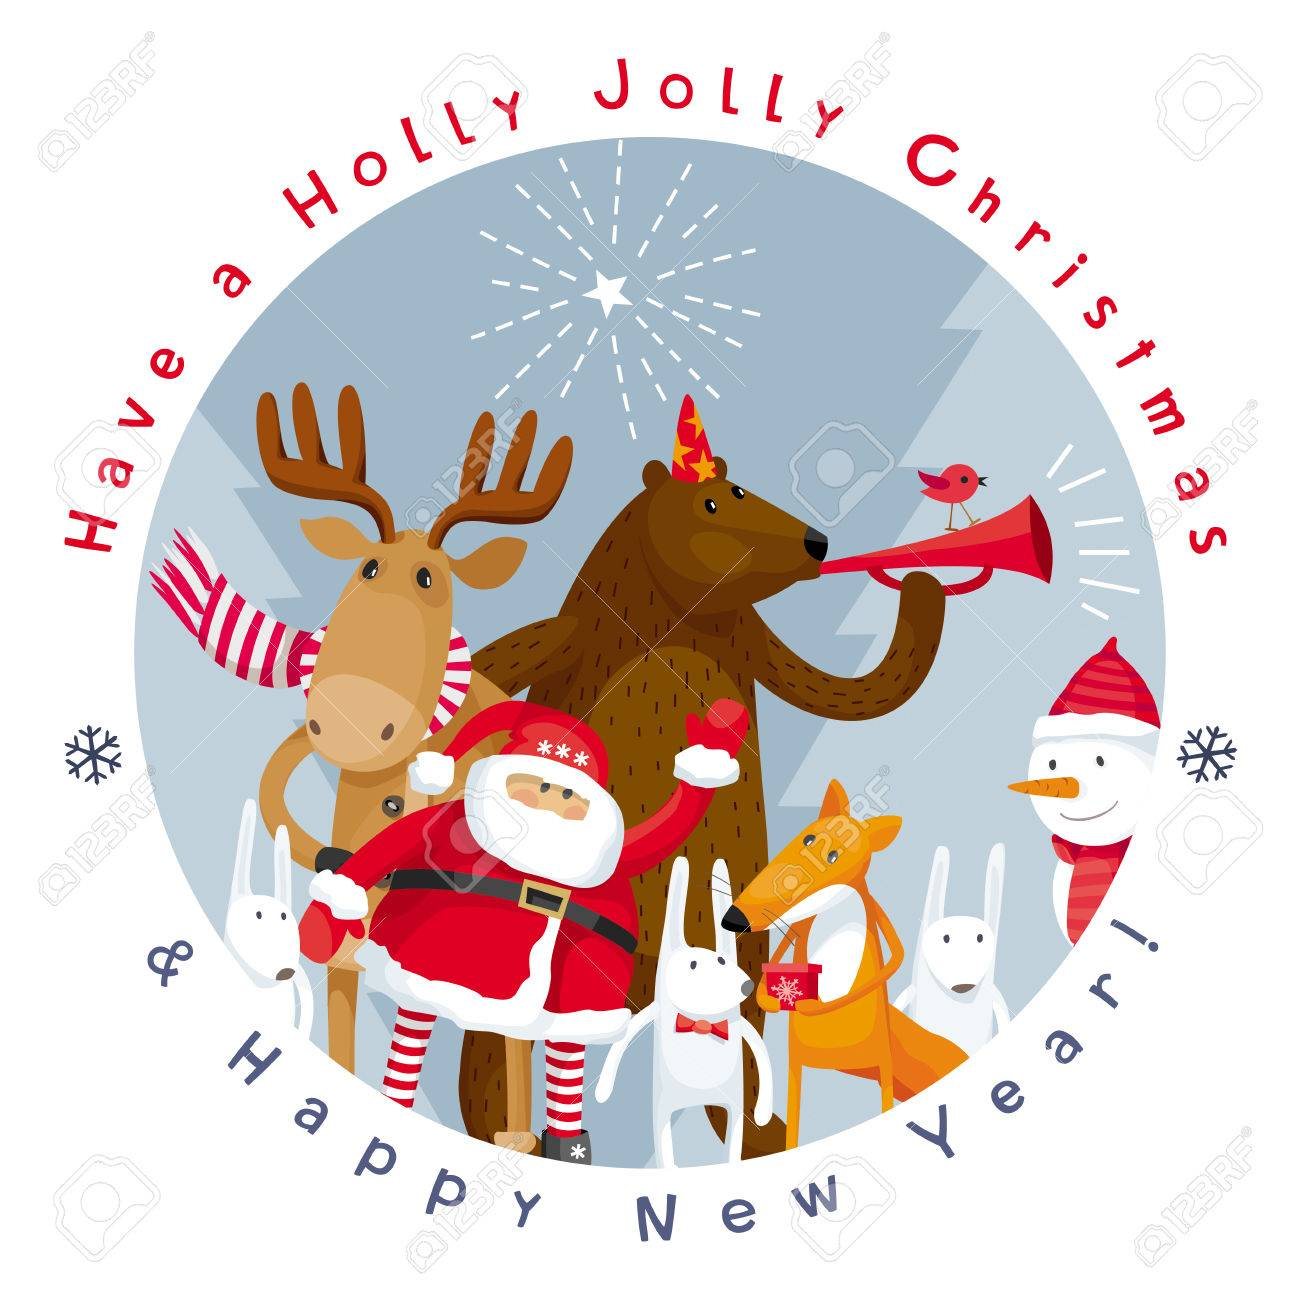 Holly Jolly Christmas.Have A Holly Jolly Christmas And Happy New Year Vector Image